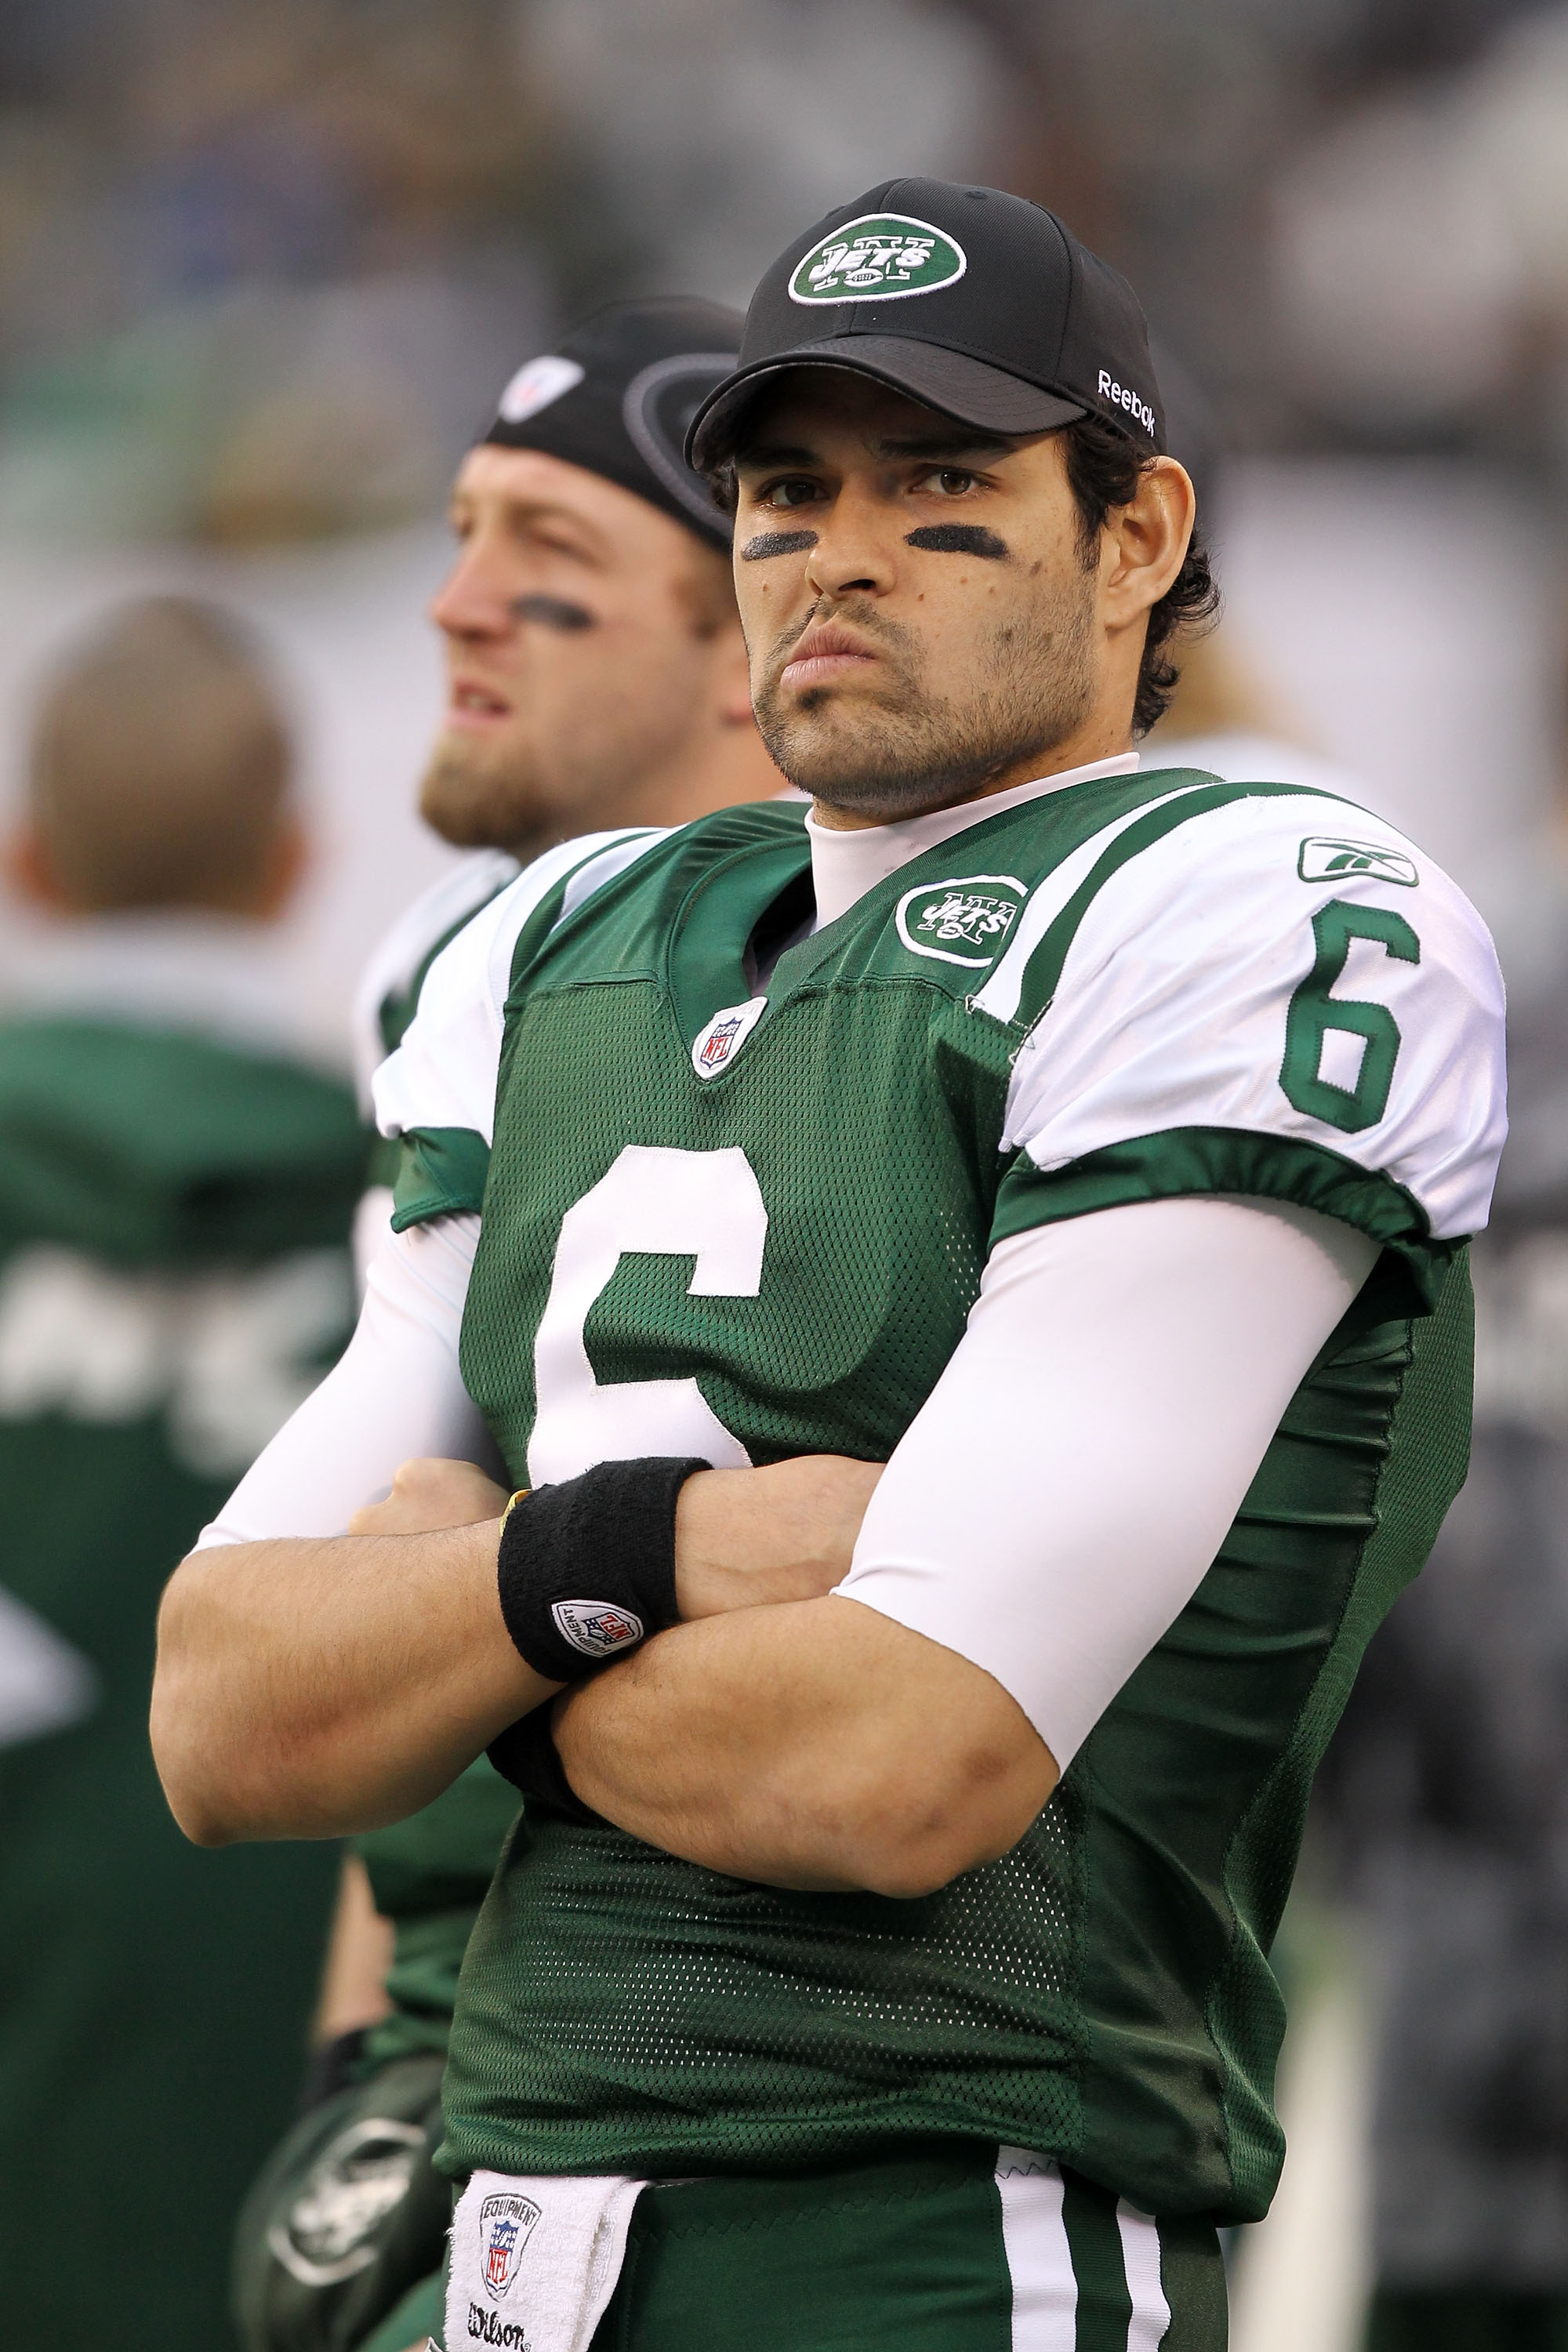 EAST RUTHERFORD, NJ - JANUARY 02:  Mark Sanchez #6 of the New York Jets reacts on the side lines during their game against the Buffalo Bills at New Meadowlands Stadium on January 2, 2011 in East Rutherford, New Jersey.  (Photo by Al Bello/Getty Images)